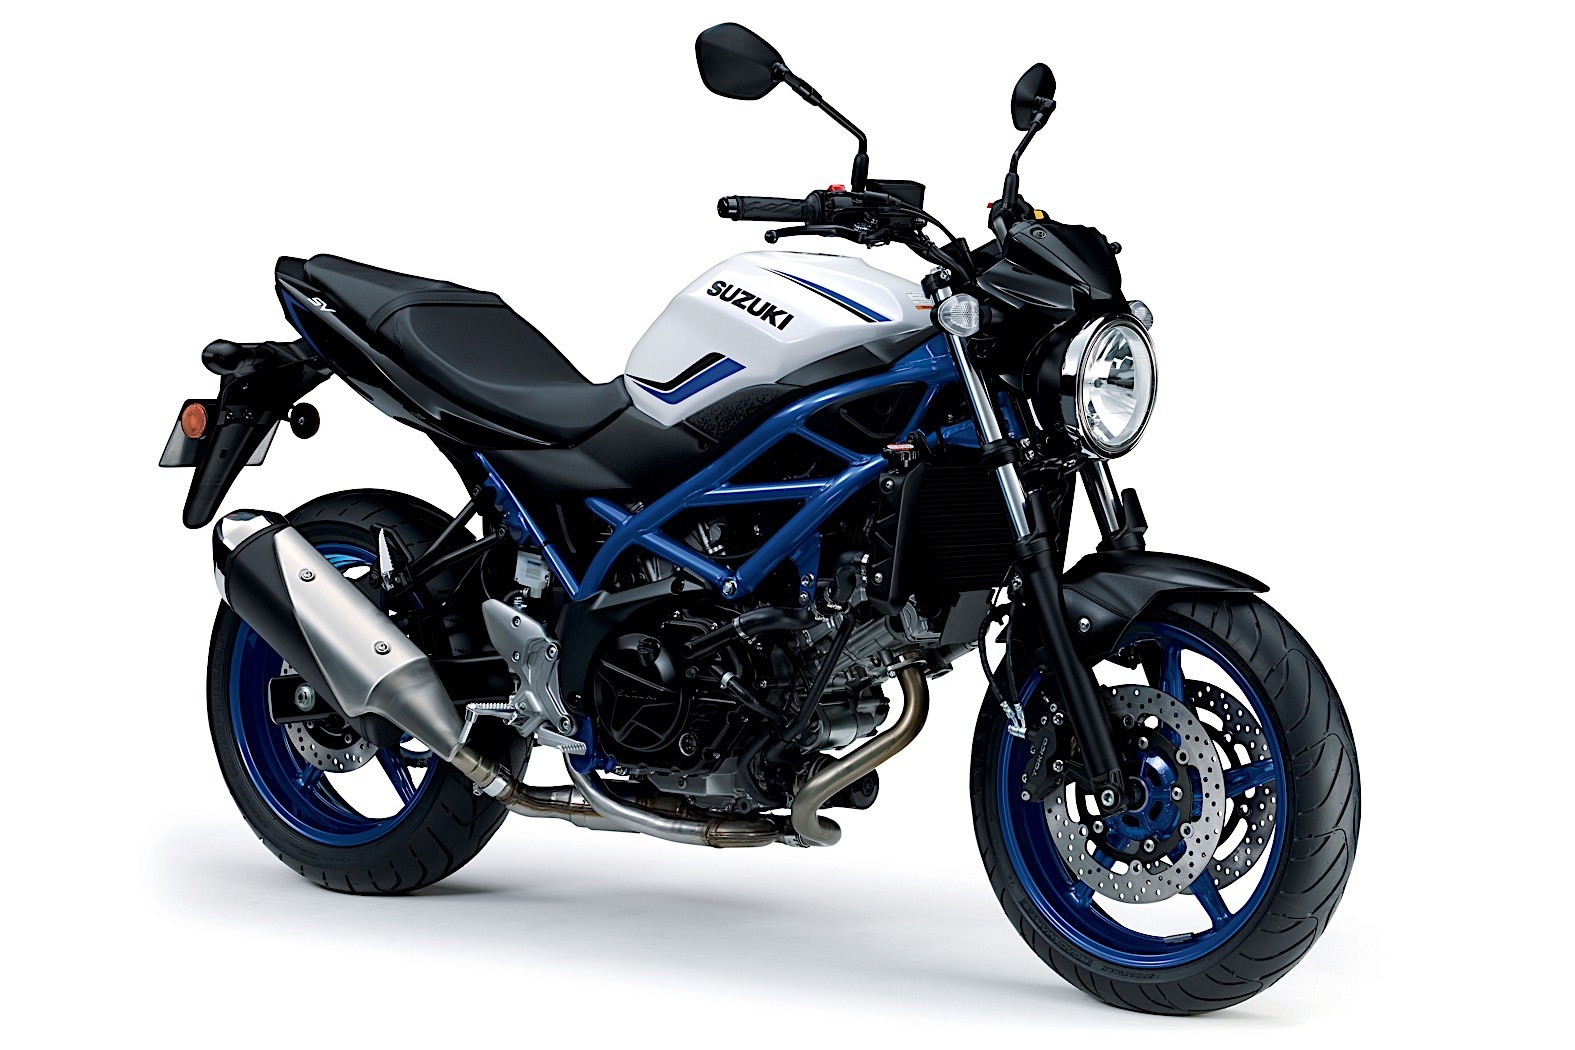 2019-suzuki-motorcycles-shine-in-new-colors-at-the-motorcycle-live-34